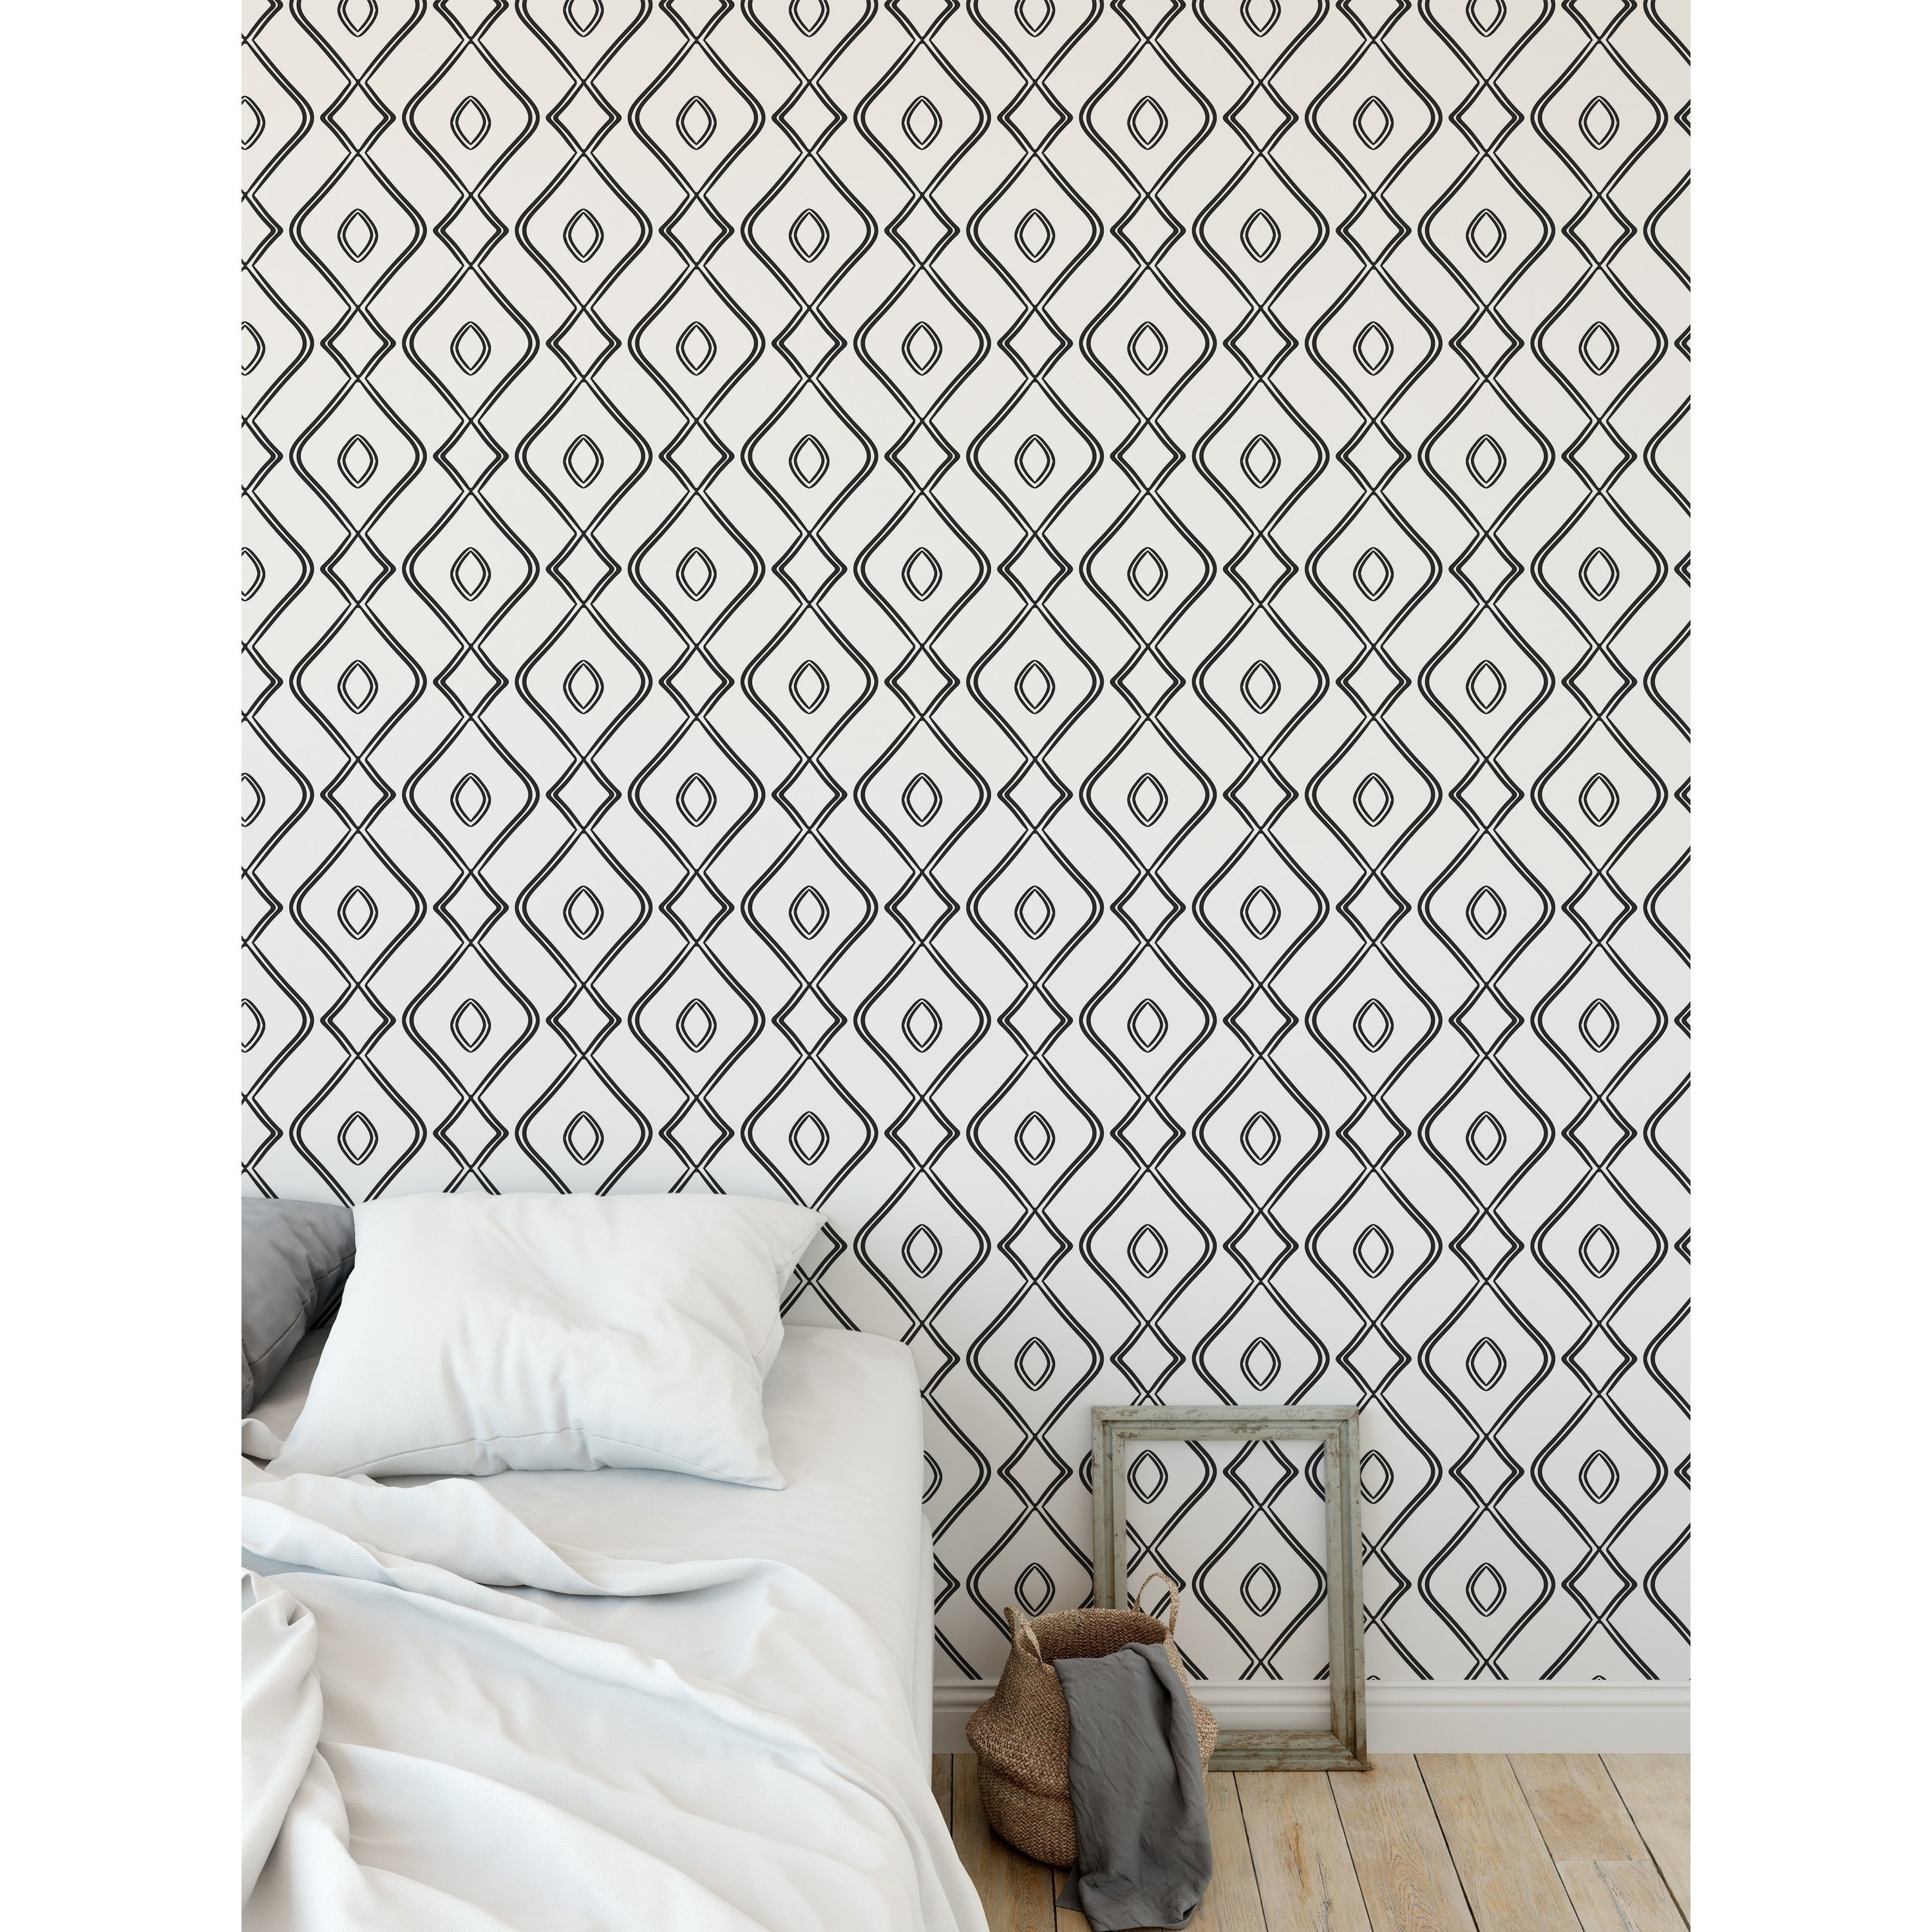 Modern Ogee Black And White Peel And Stick Wallpaper By Becky Bailey